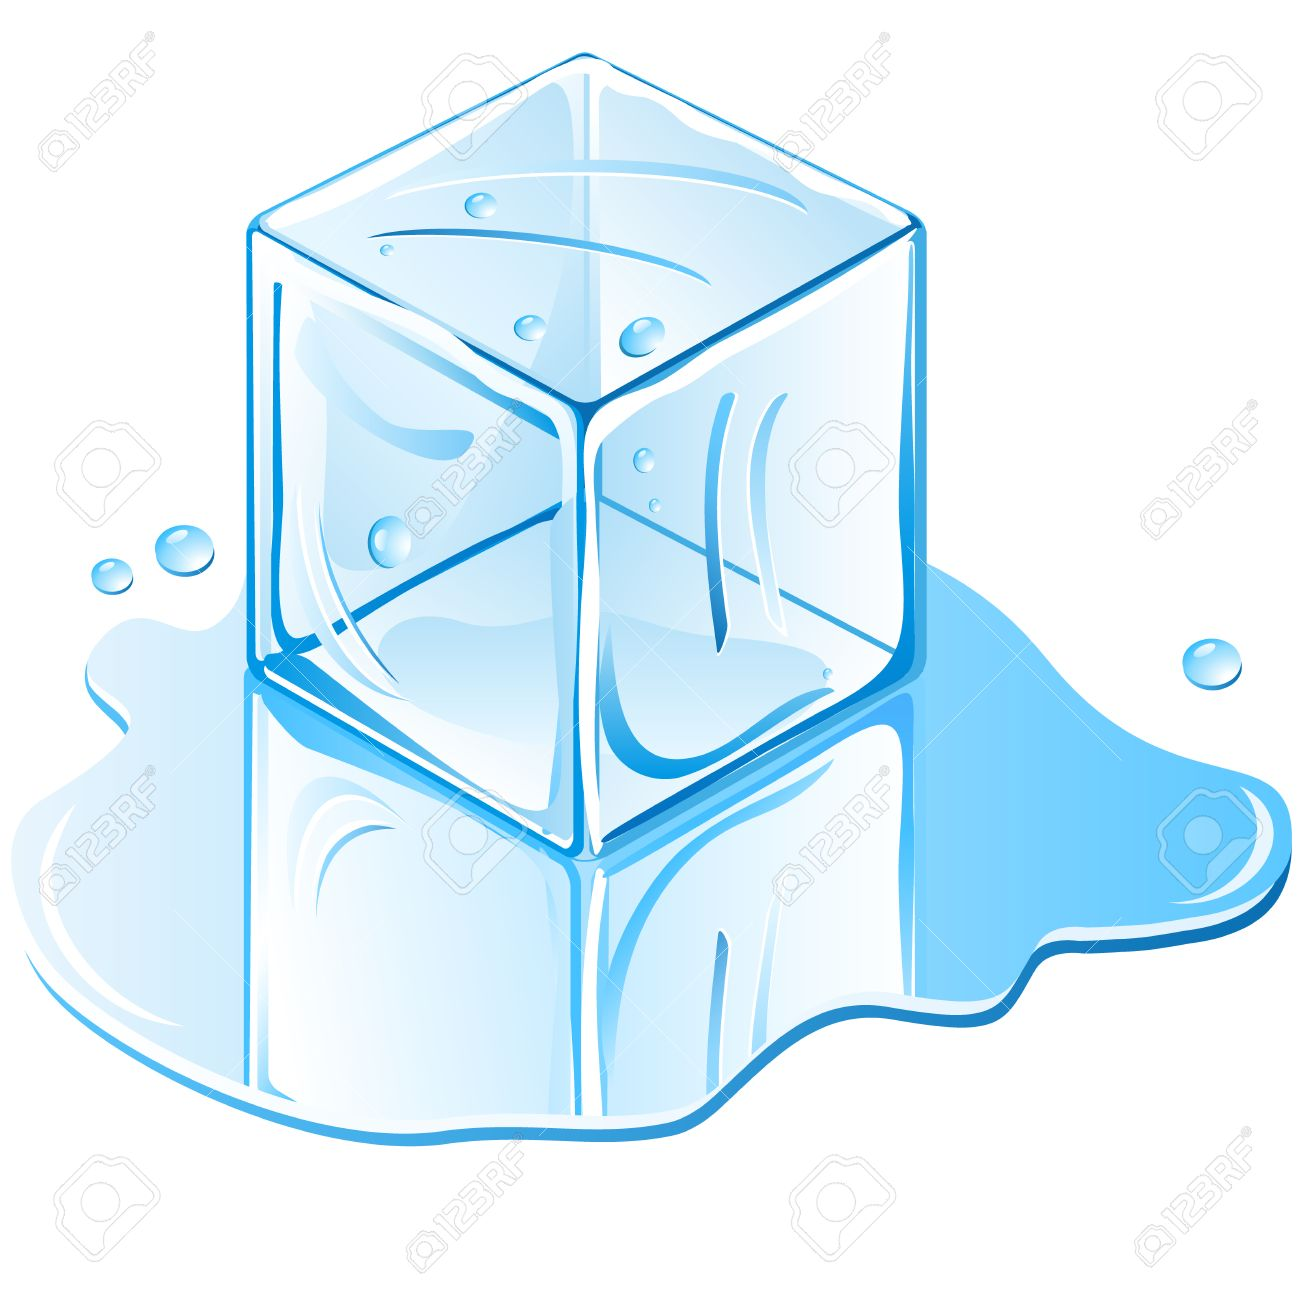 Ice Cubes Drawing Ice Cubes in Water Ice Cube